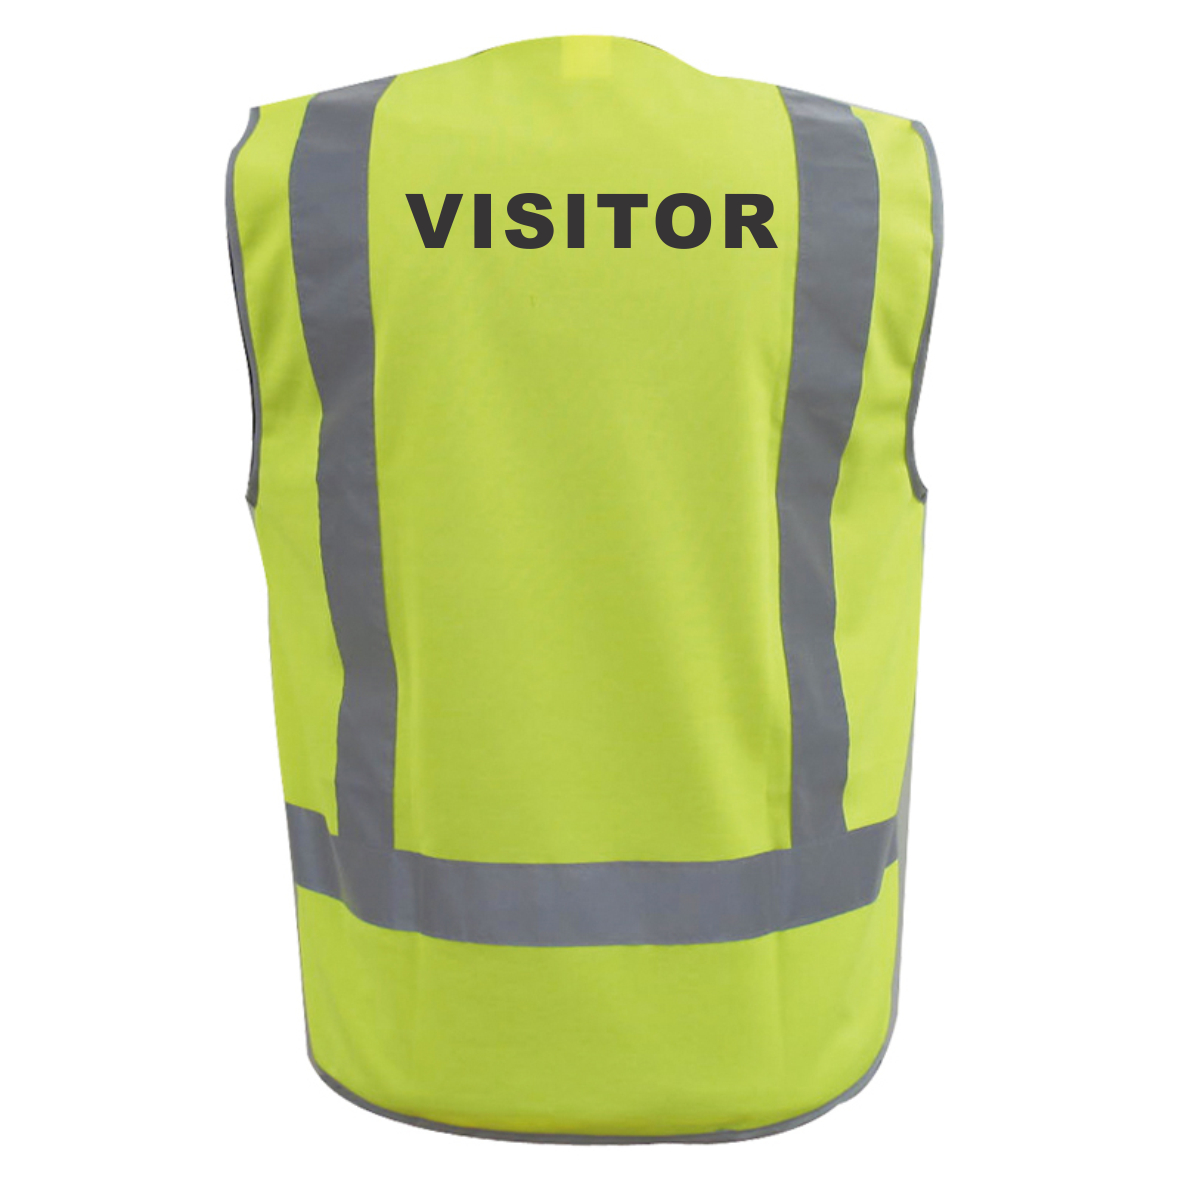 UU008 Safety Vest VISITOR